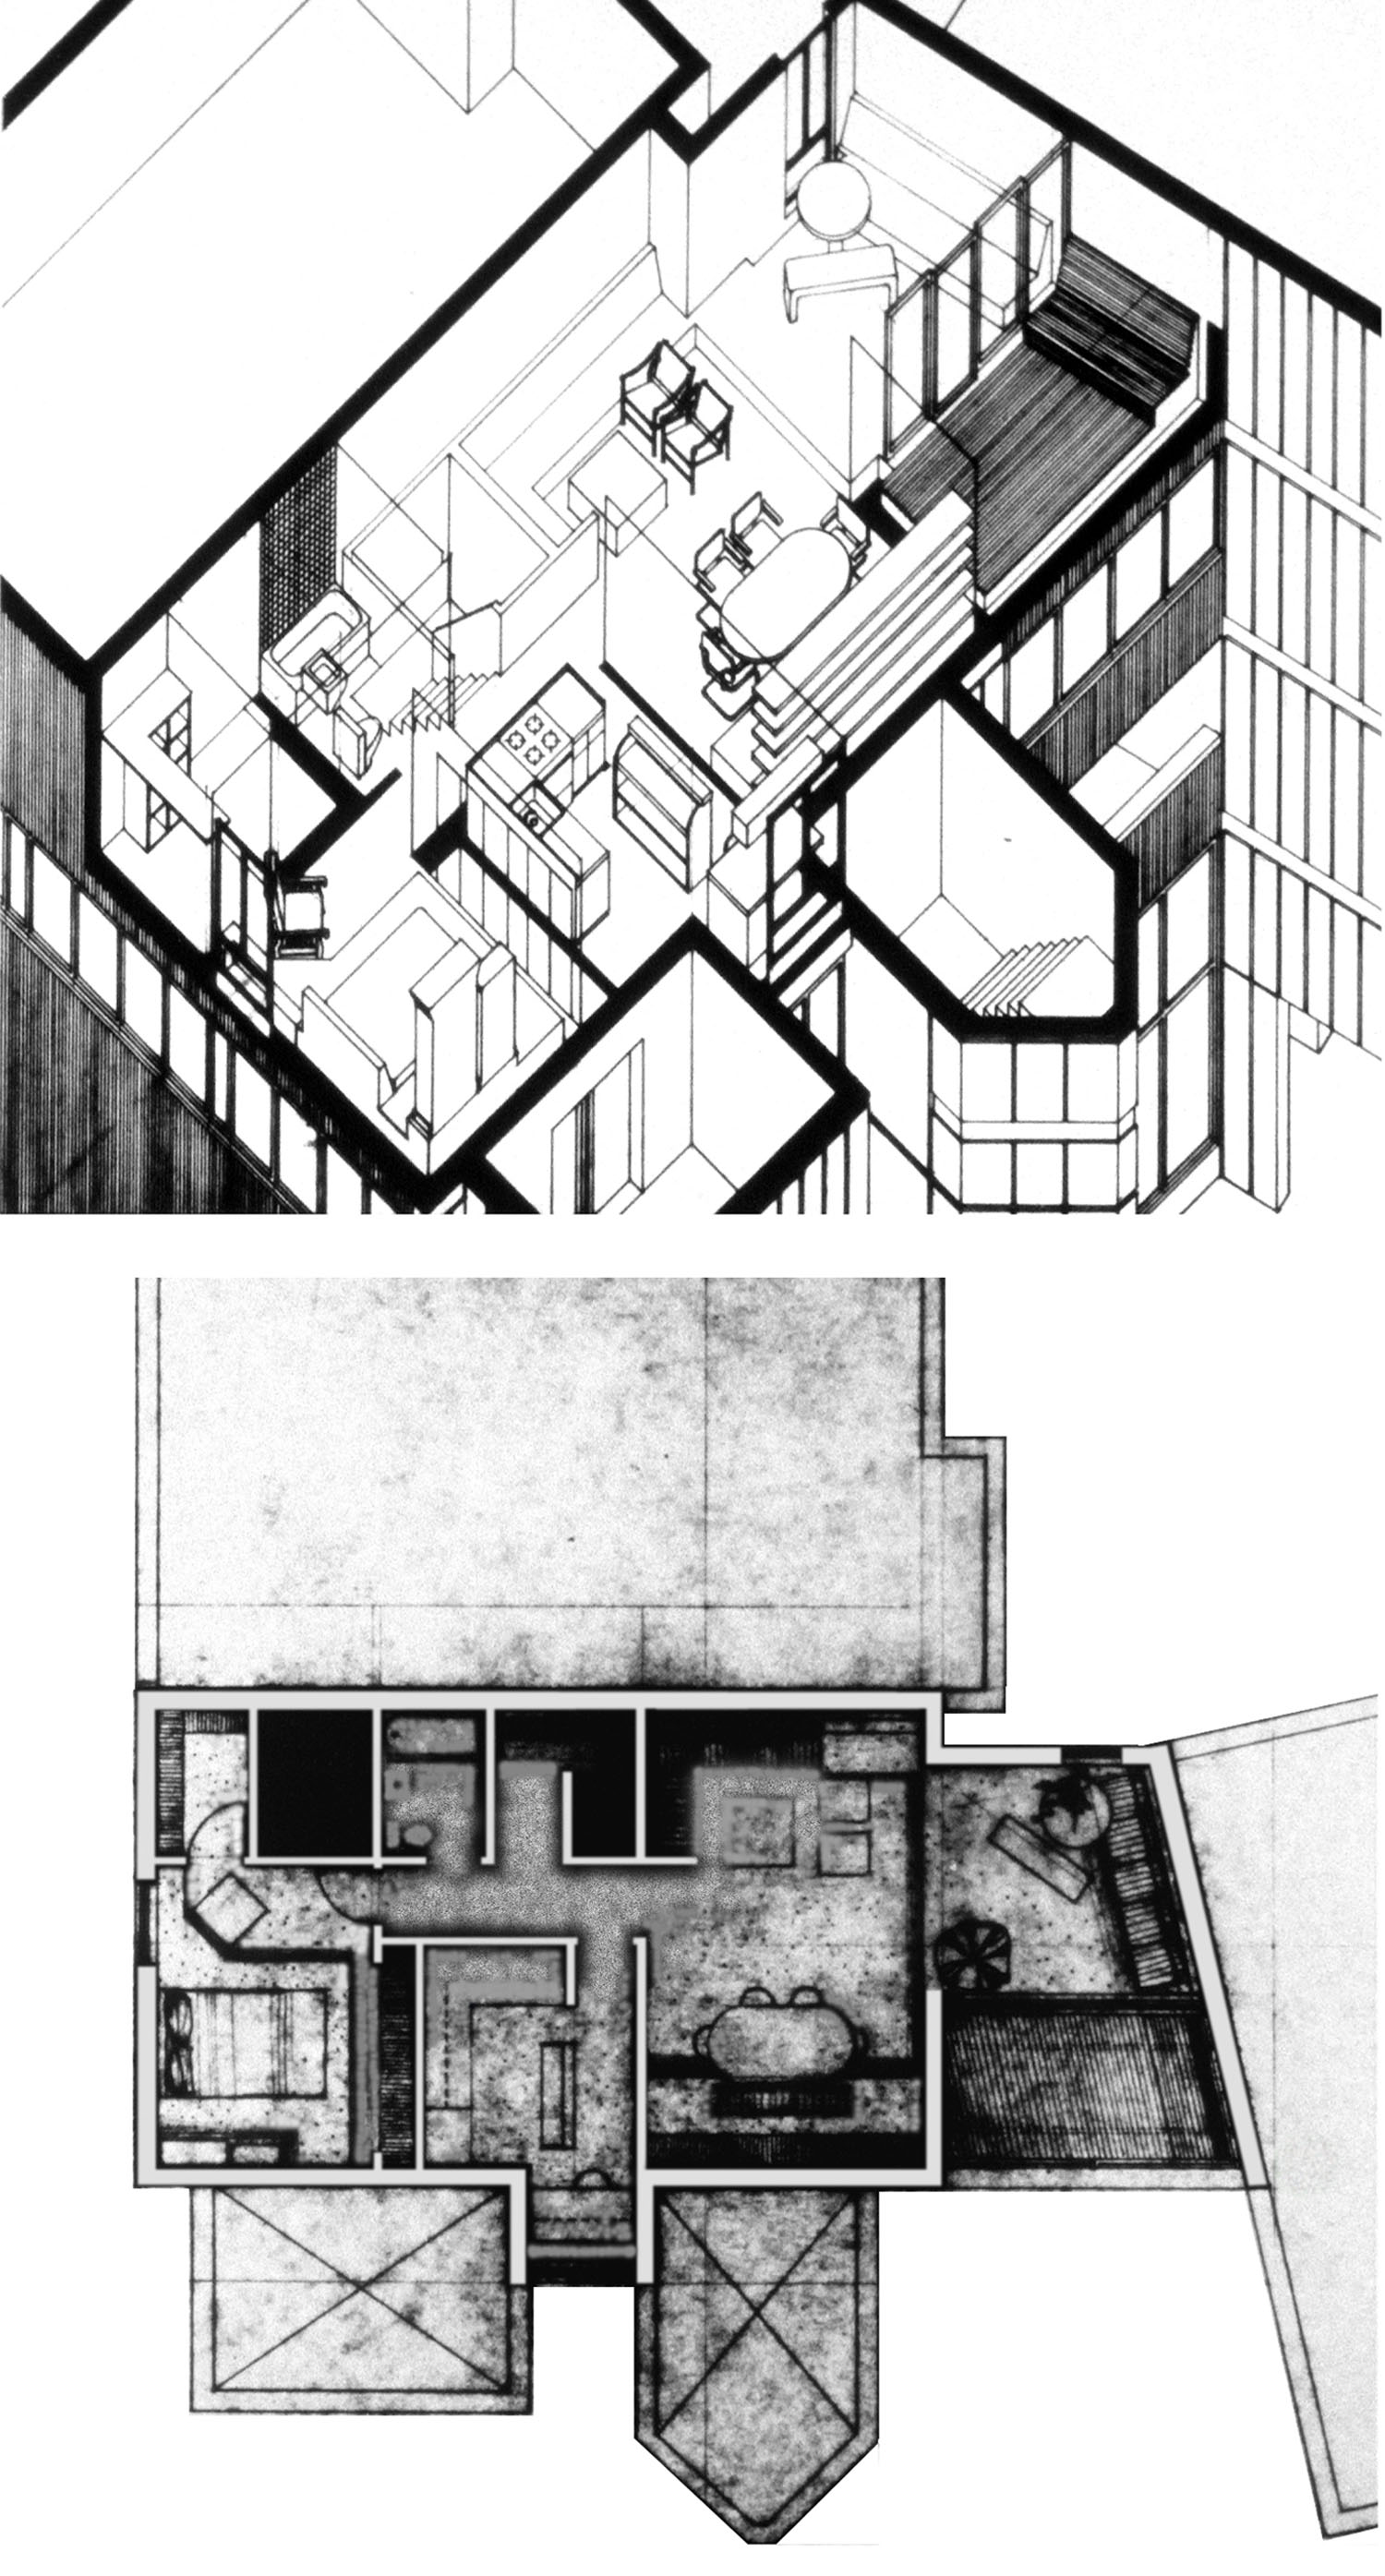 Roosevelt Island Apartment Plan & Axonometric Drawing